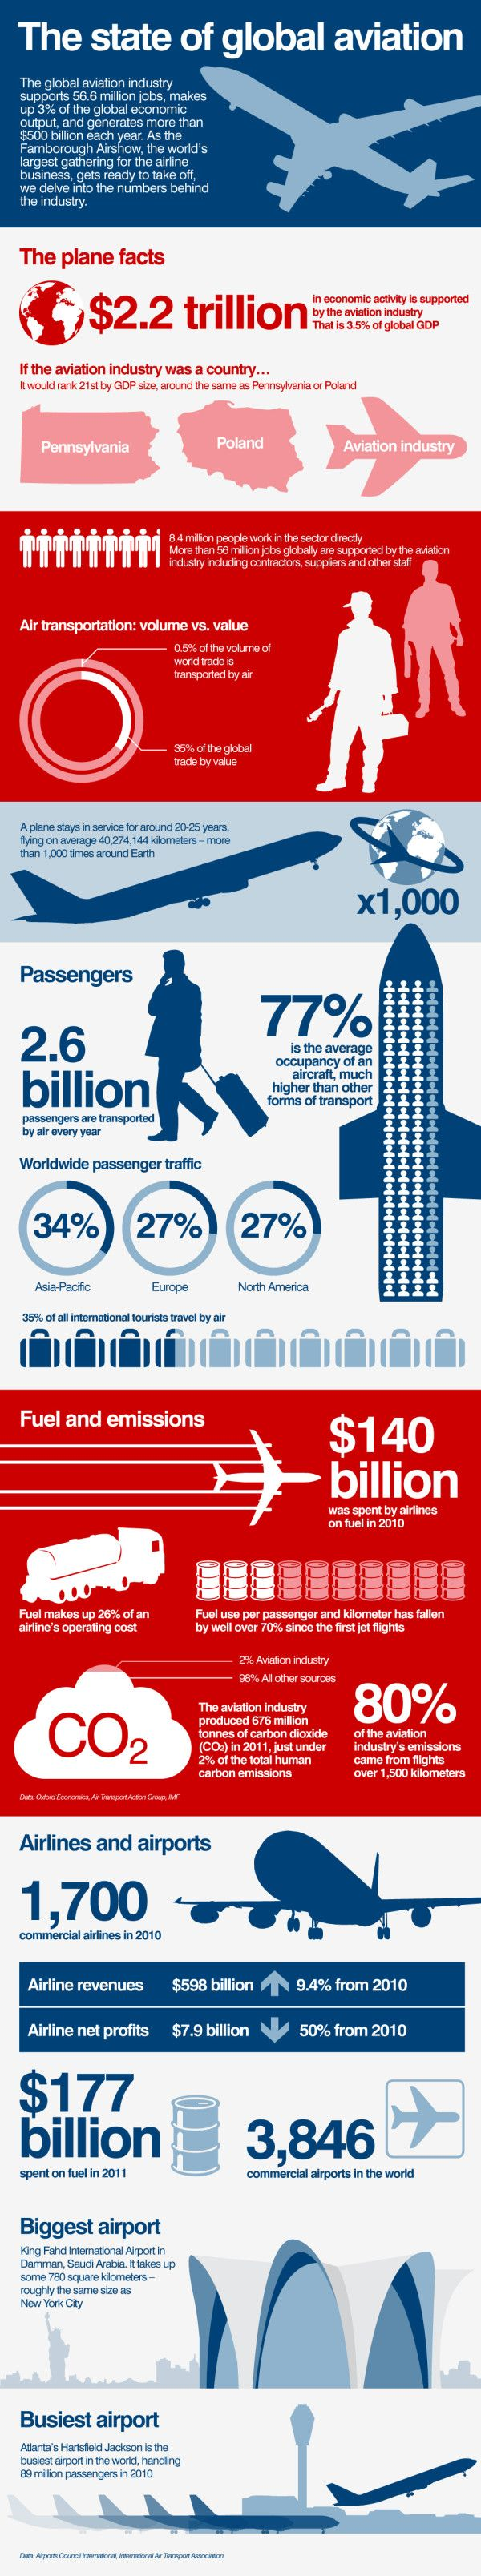 "Great infographic from @CNN on the state of global aviation: ""Up in the air: Aviation industry in numbers"" / 80% OFF on Private Jet Flight! www.flightpooling.com #infographics #Business"